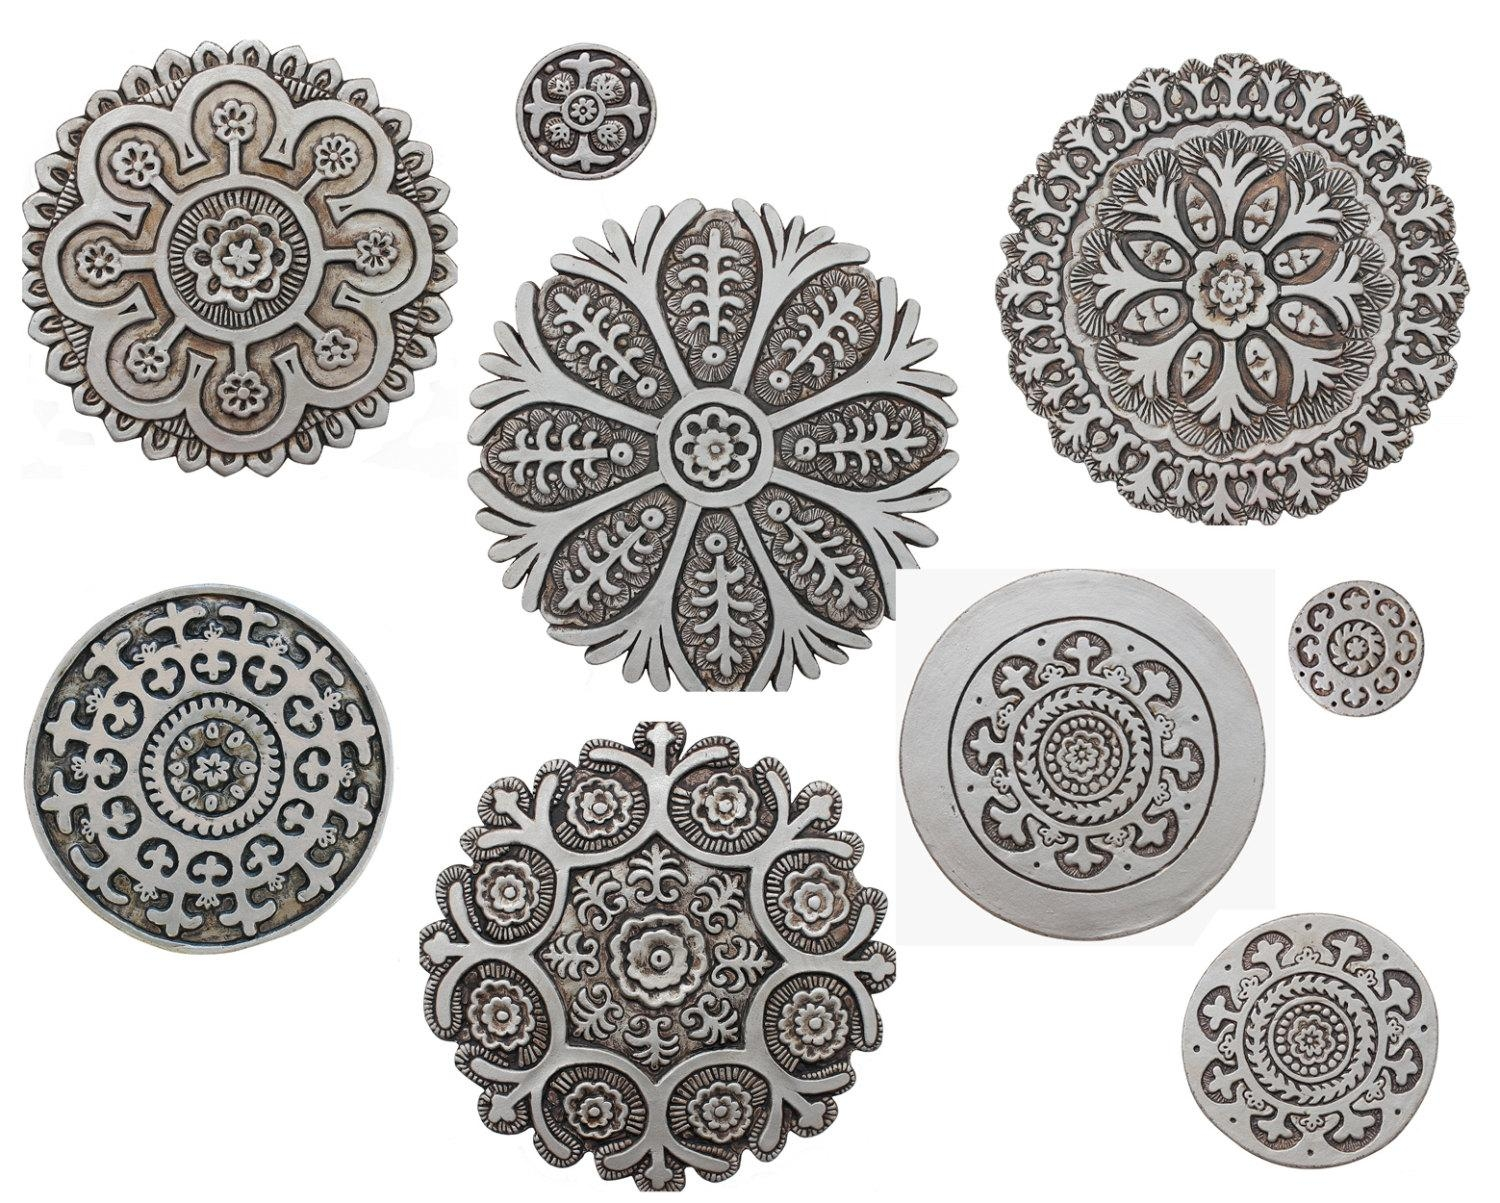 9 Circle Wall Art With Suzani Designs Painted In Aged Silver For Ceramic Tile Wall Art (View 13 of 20)